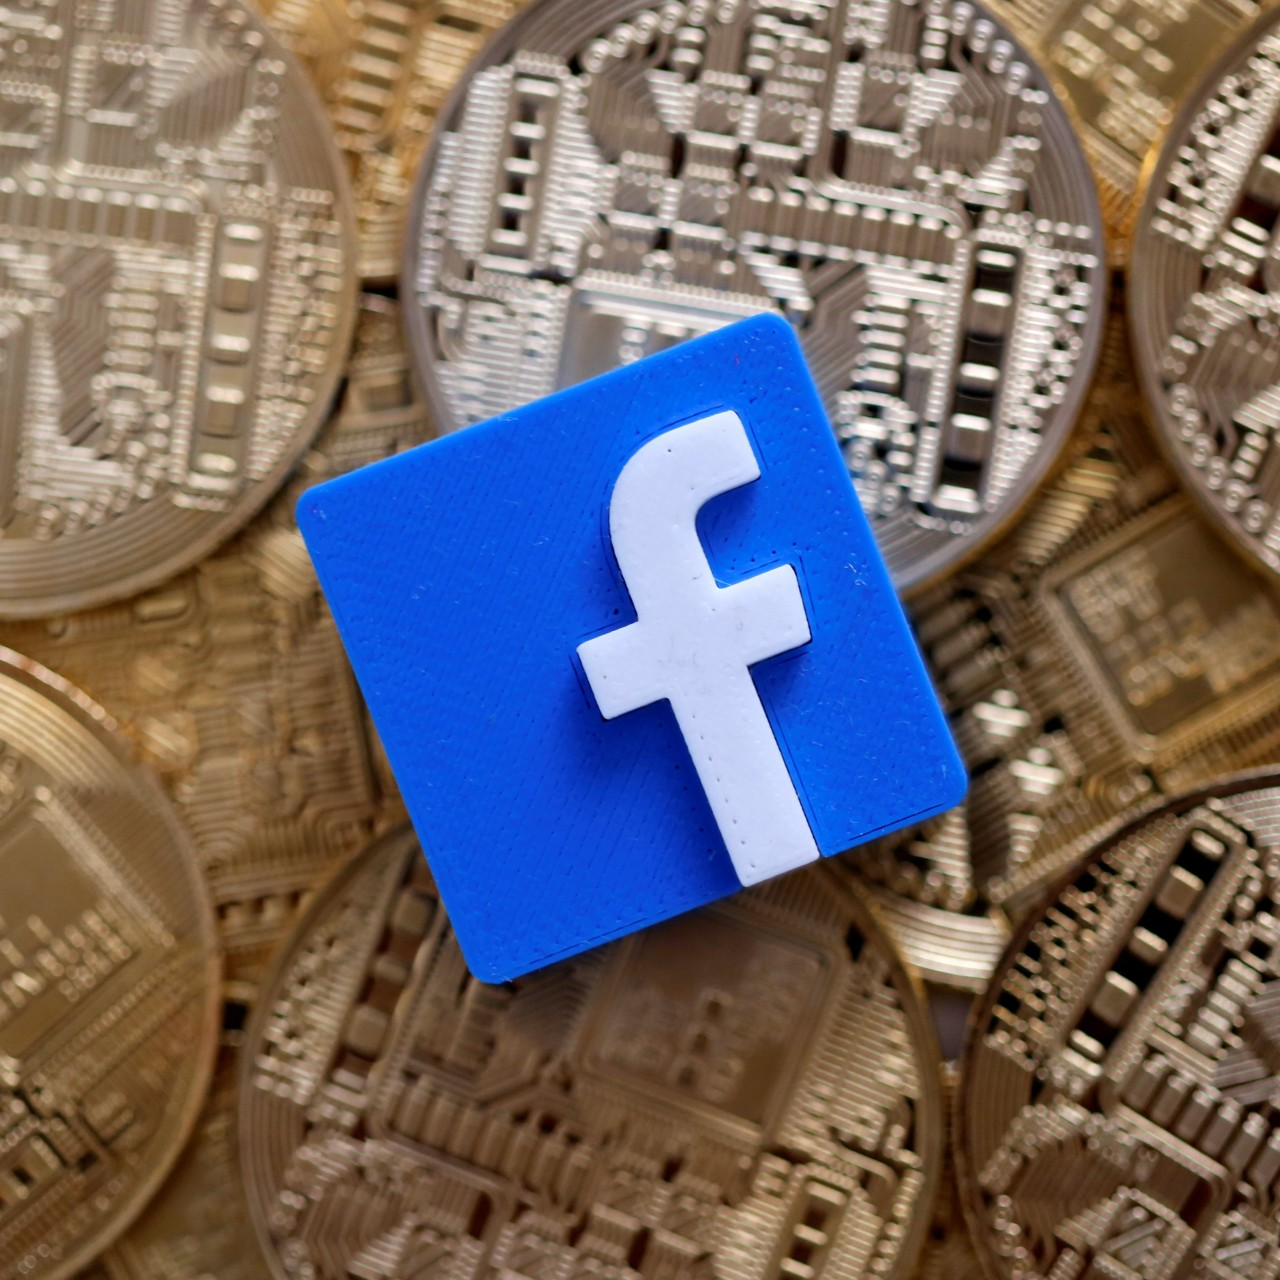 Facebook reveals Libra cryptocurrency, sparking new privacy